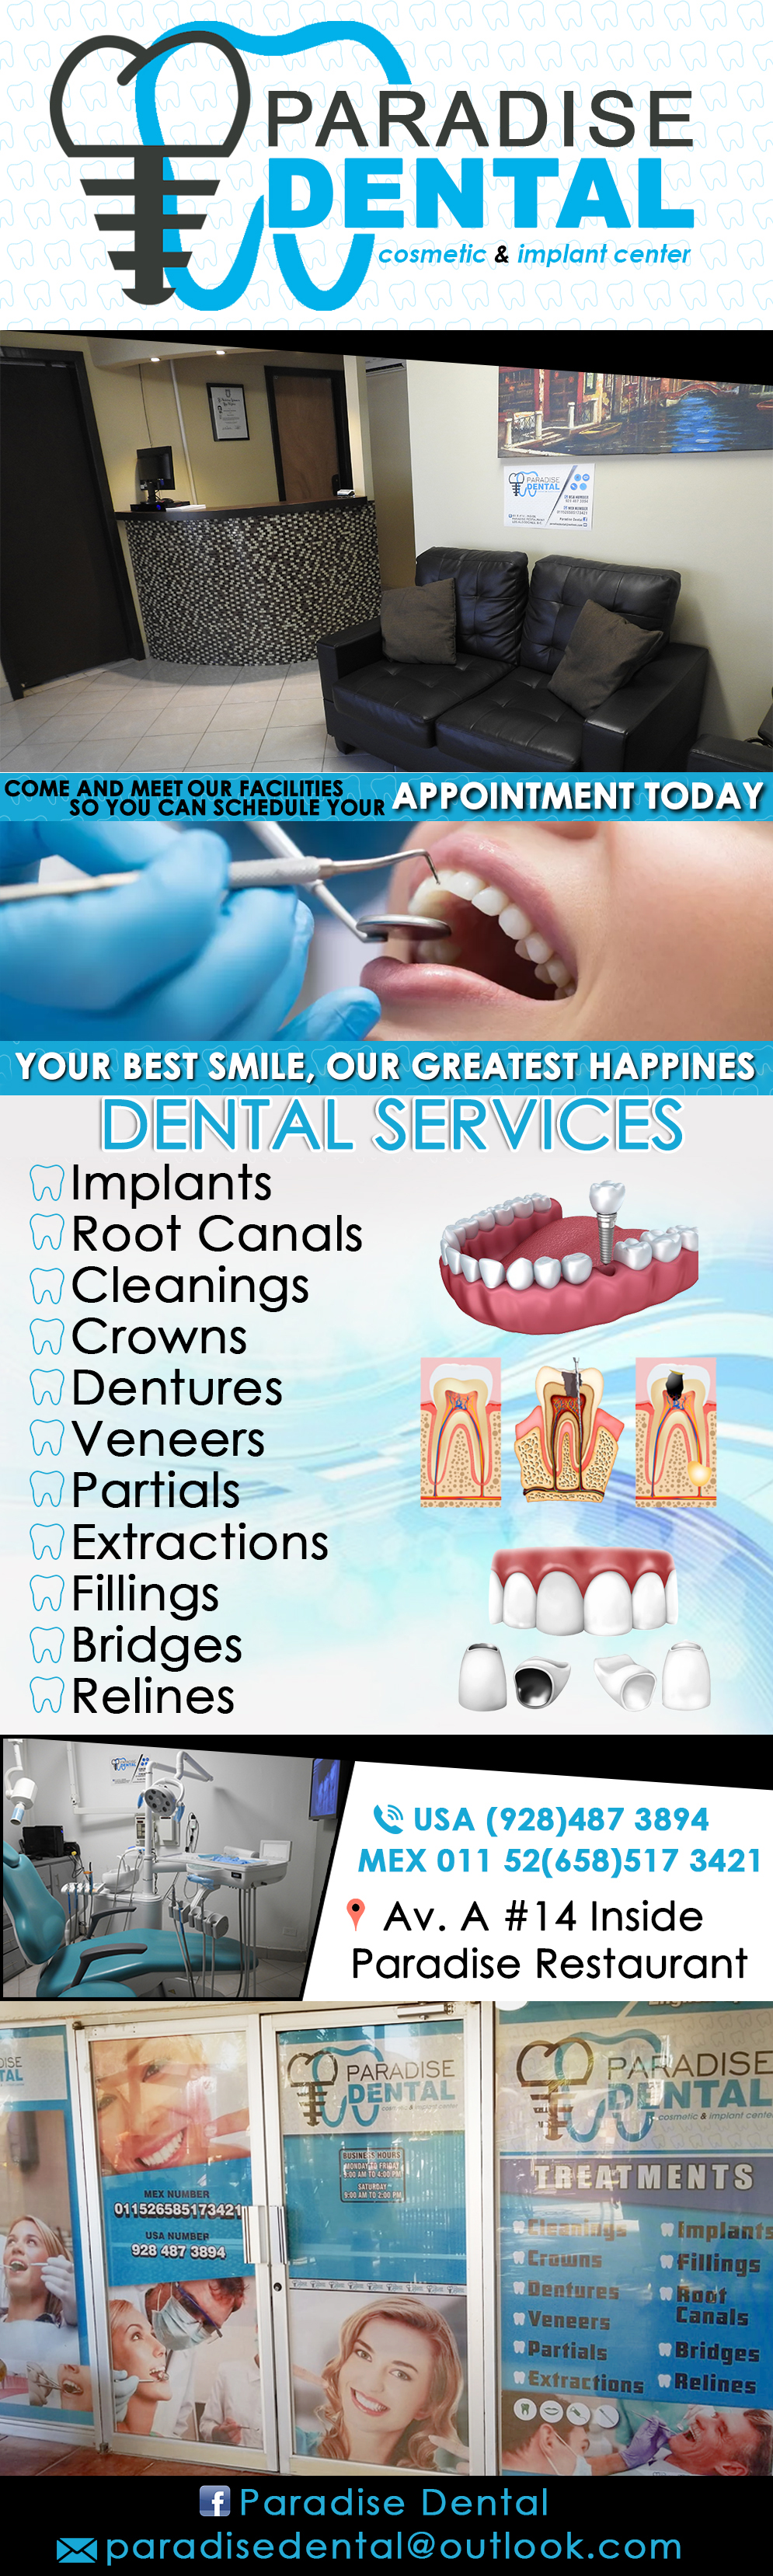 Paradise Dental Cosmetic & Implant Center in Algodones  in Algodones  ENGLISH SPOKEN